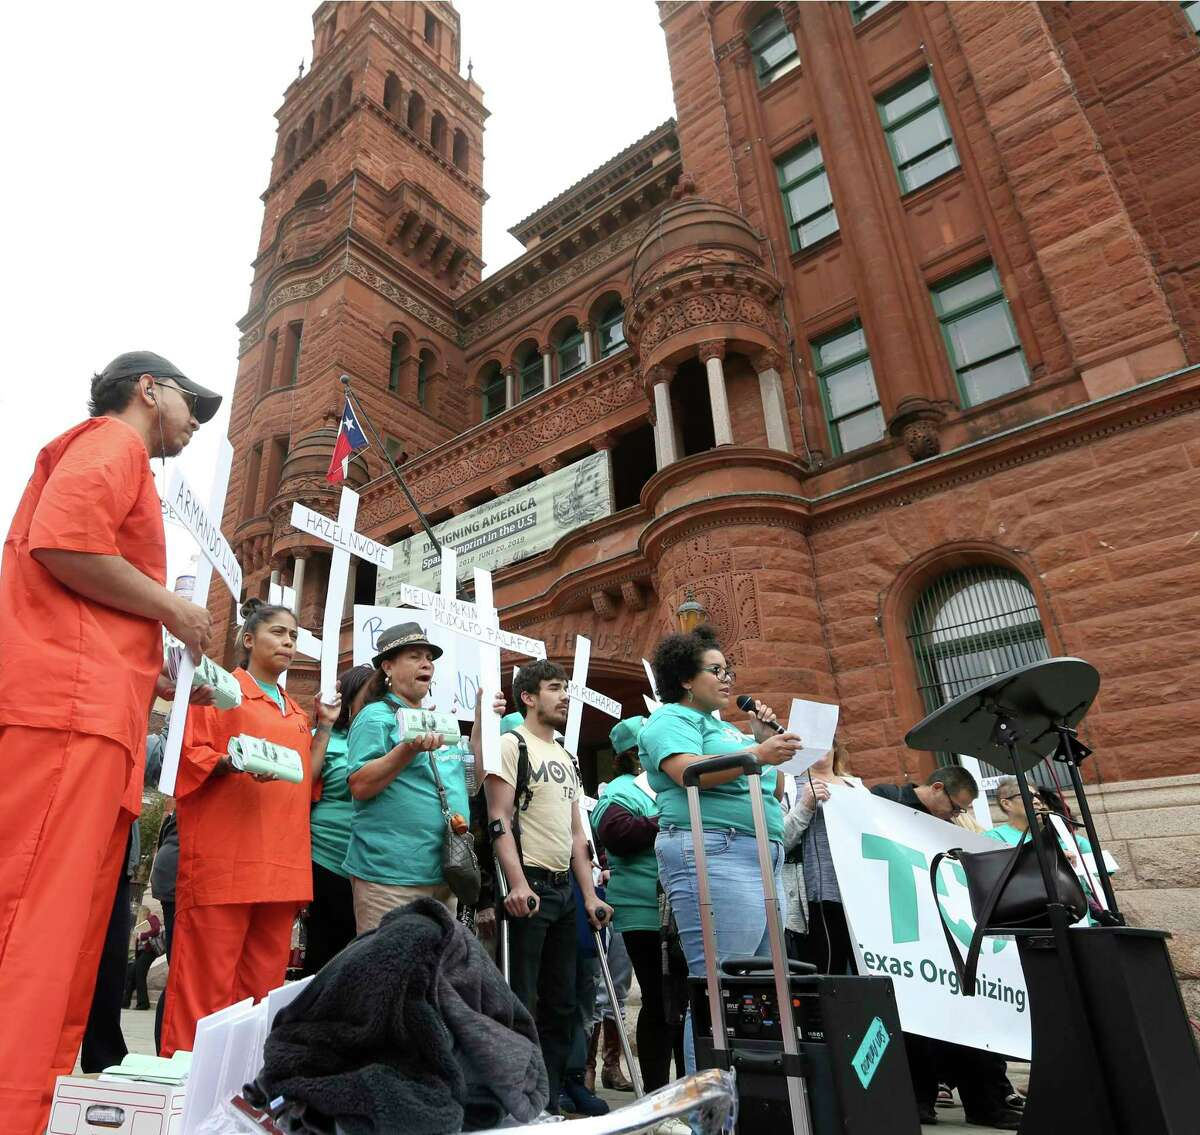 Members of the Texas Organizing Project held a press conference in March calling for bail reform. So far, Bexar County's criminal court judges have failed to act. Perhaps a recent ruling supporting bail reform in Harris County will change that.